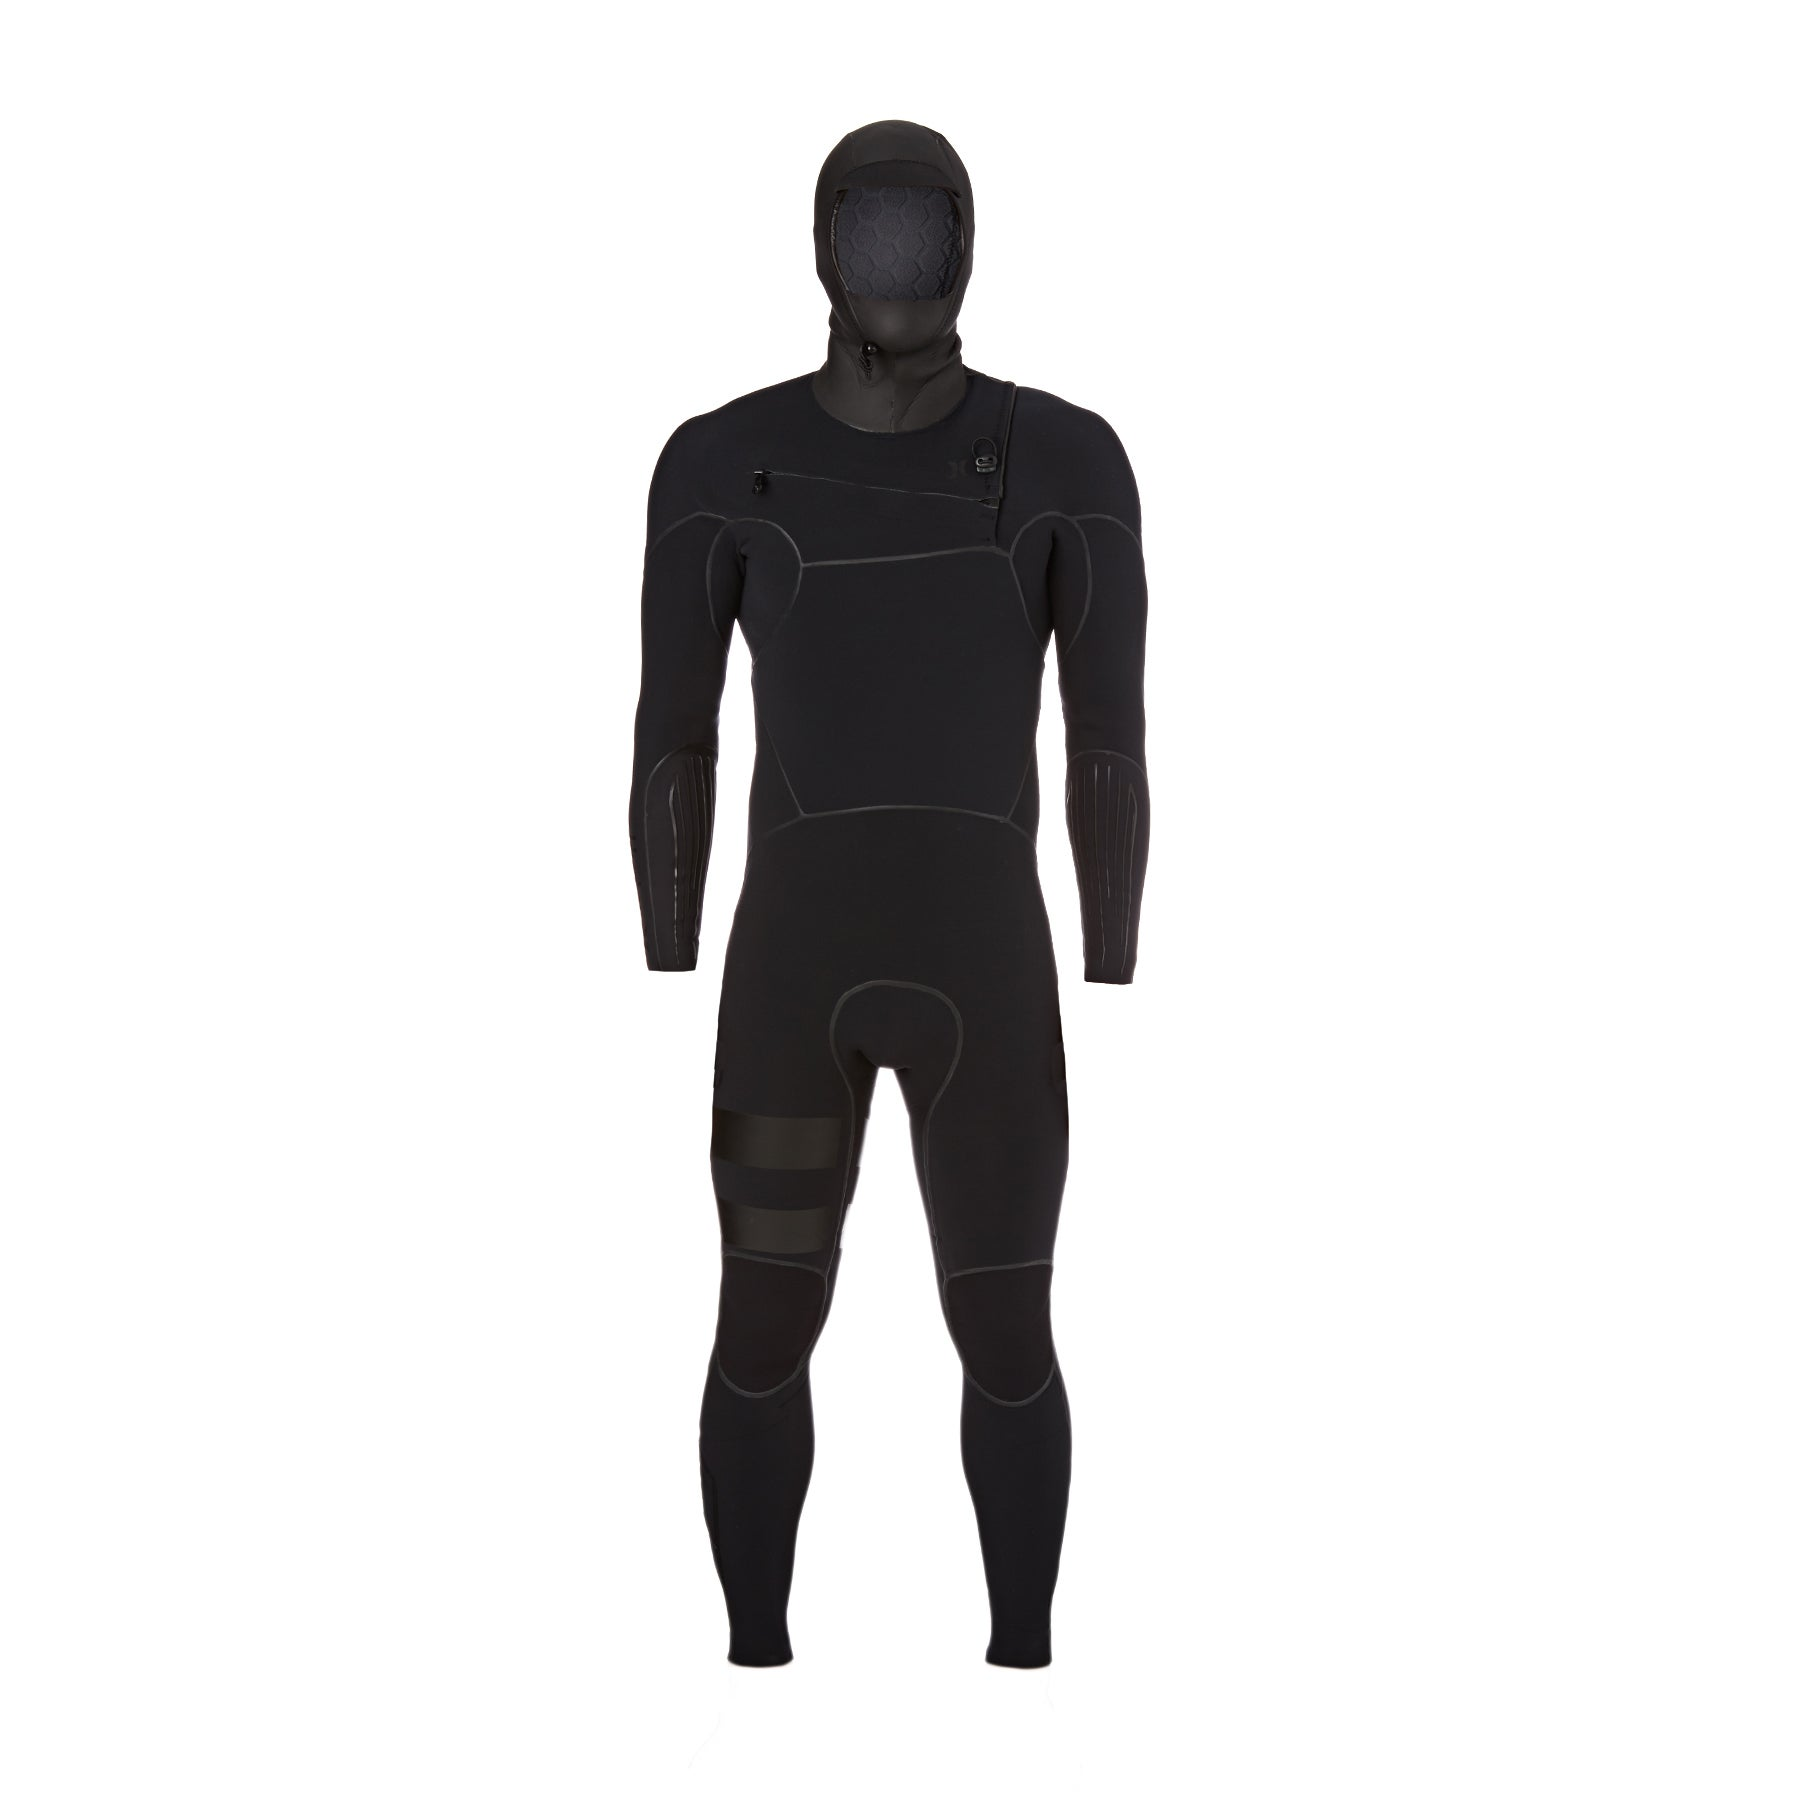 Hurley Advantage Max 5/4mm Chest Zip Hooded Wetsuit - Black